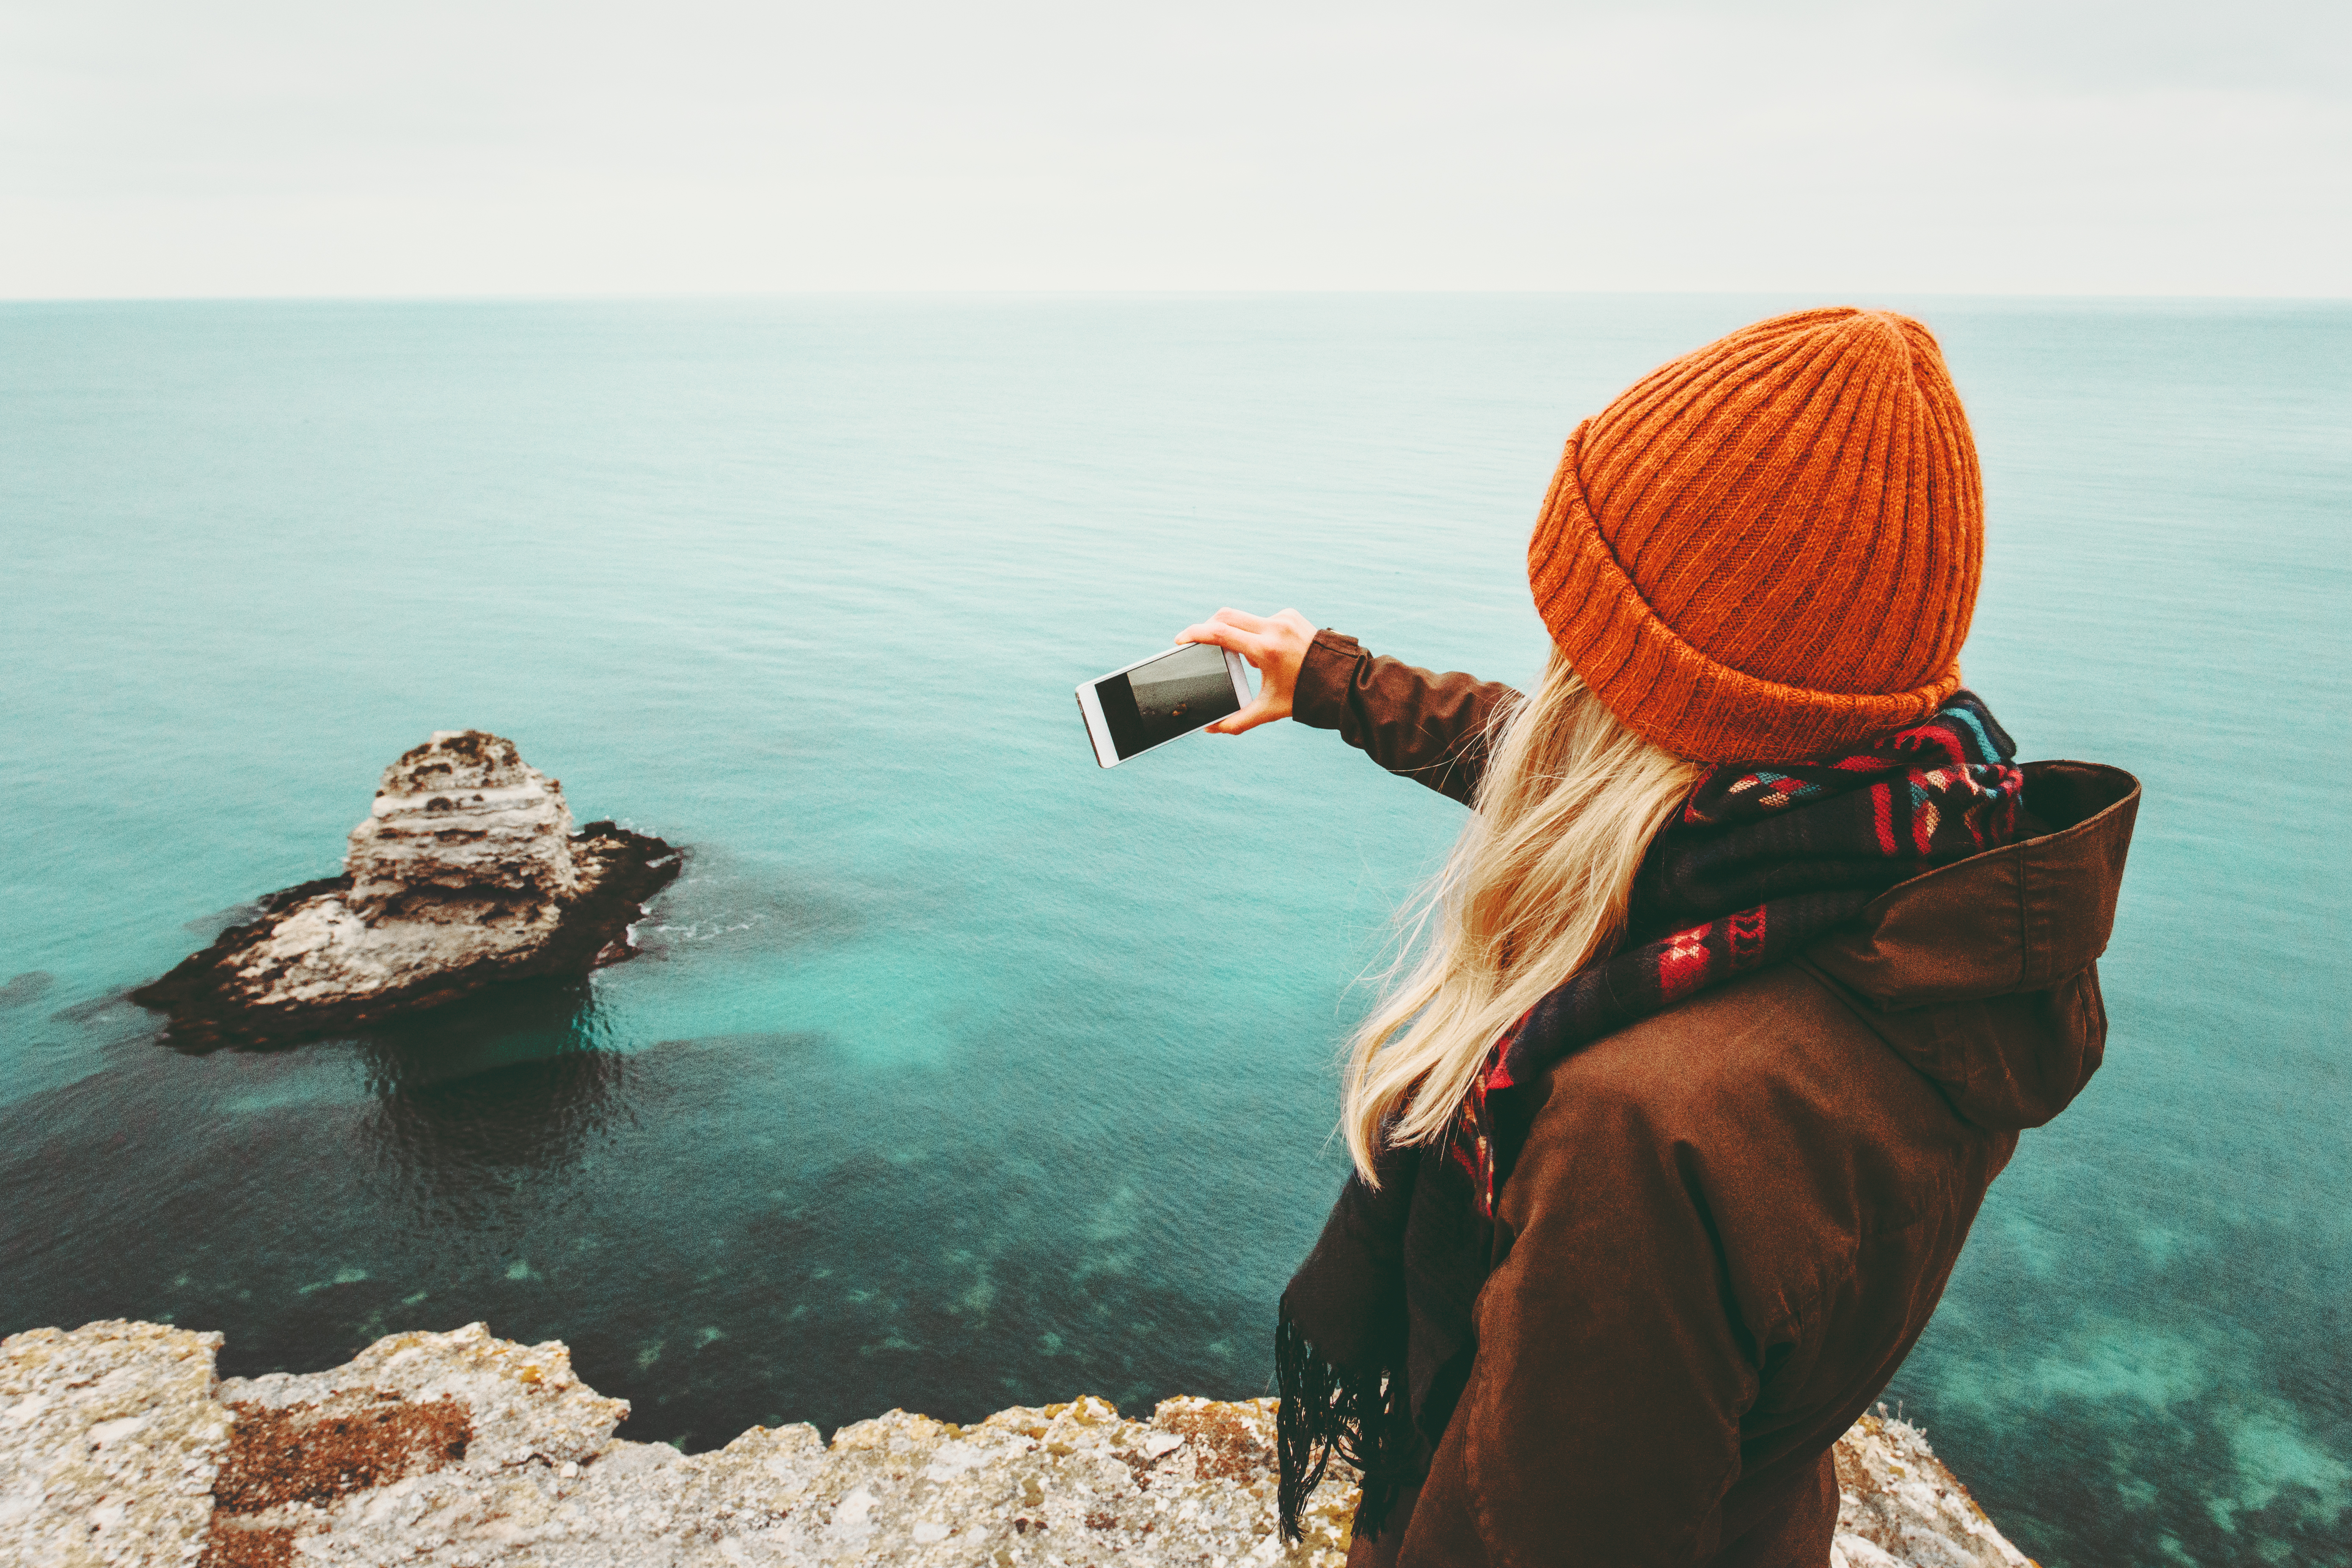 Where Are Your Mobile Phone Photos Saved? – GoodSync Blog